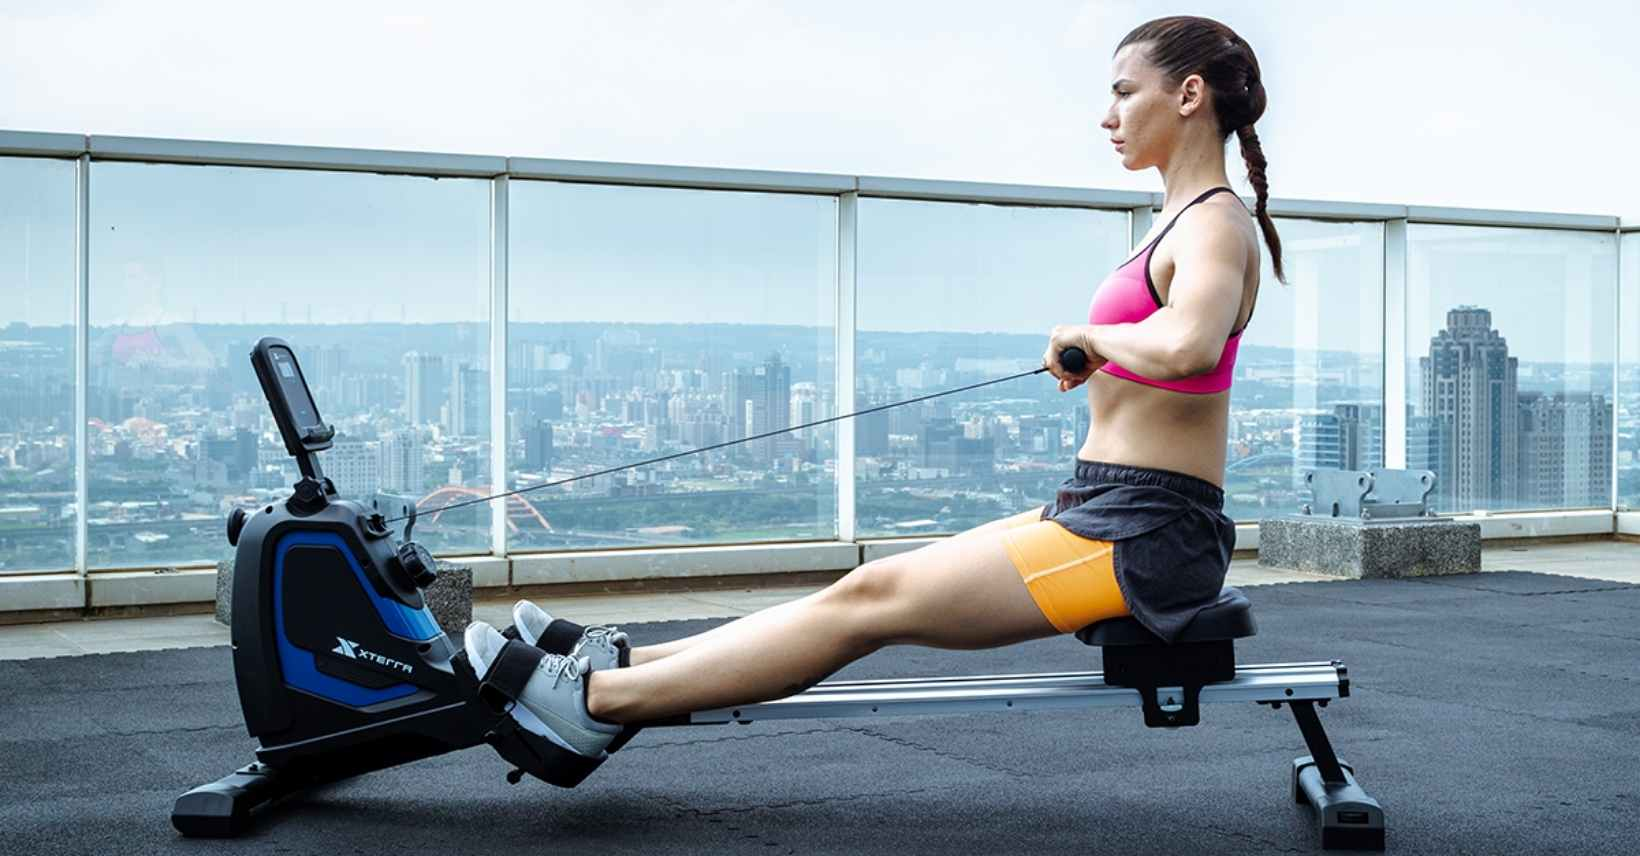 Full Motion Magnetic Rowing Machine - featured